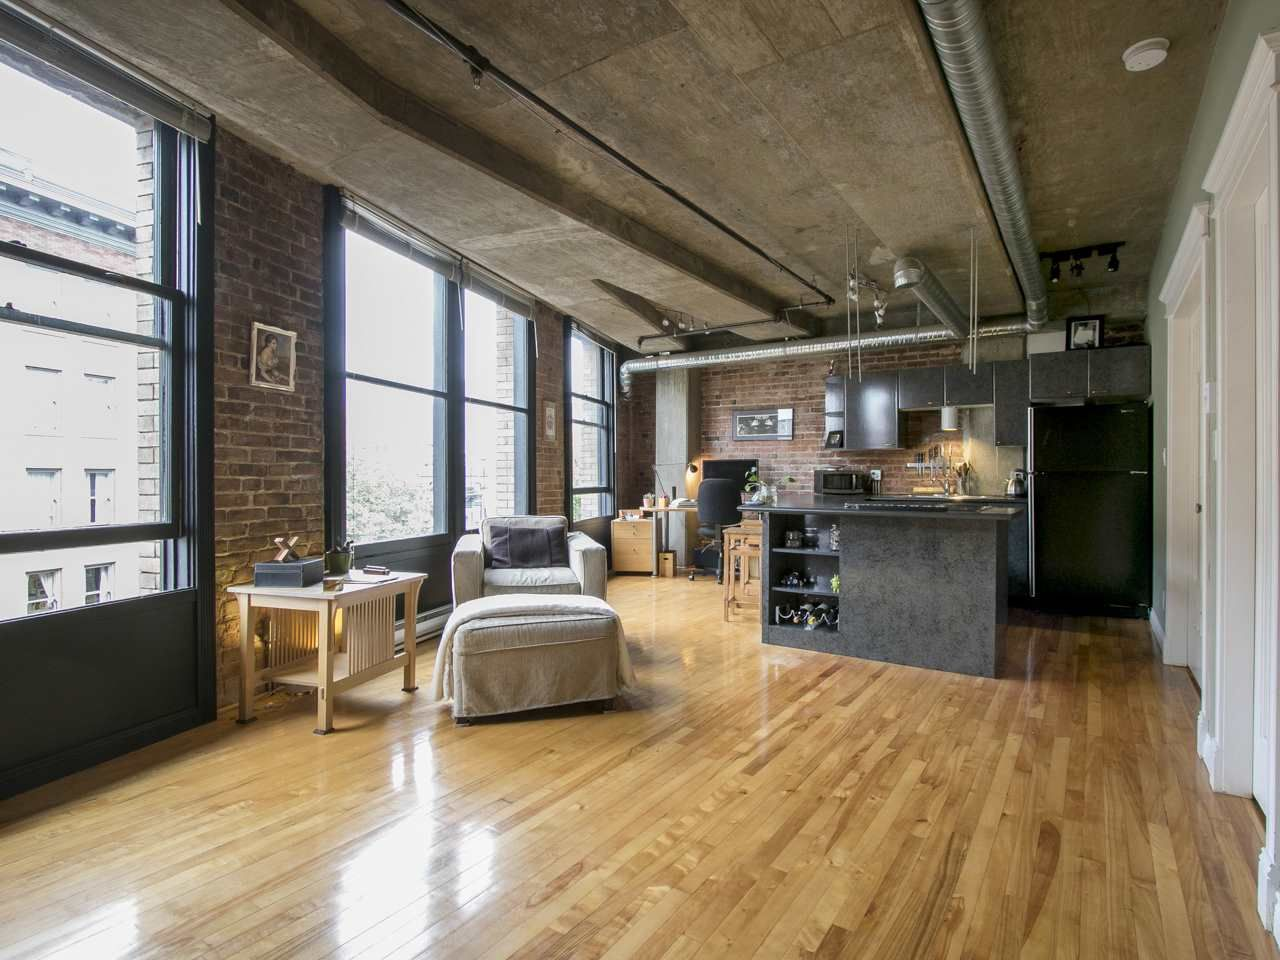 """Main Photo: 504 27 ALEXANDER Street in Vancouver: Downtown VE Condo for sale in """"The Alexander"""" (Vancouver East)  : MLS®# R2007878"""